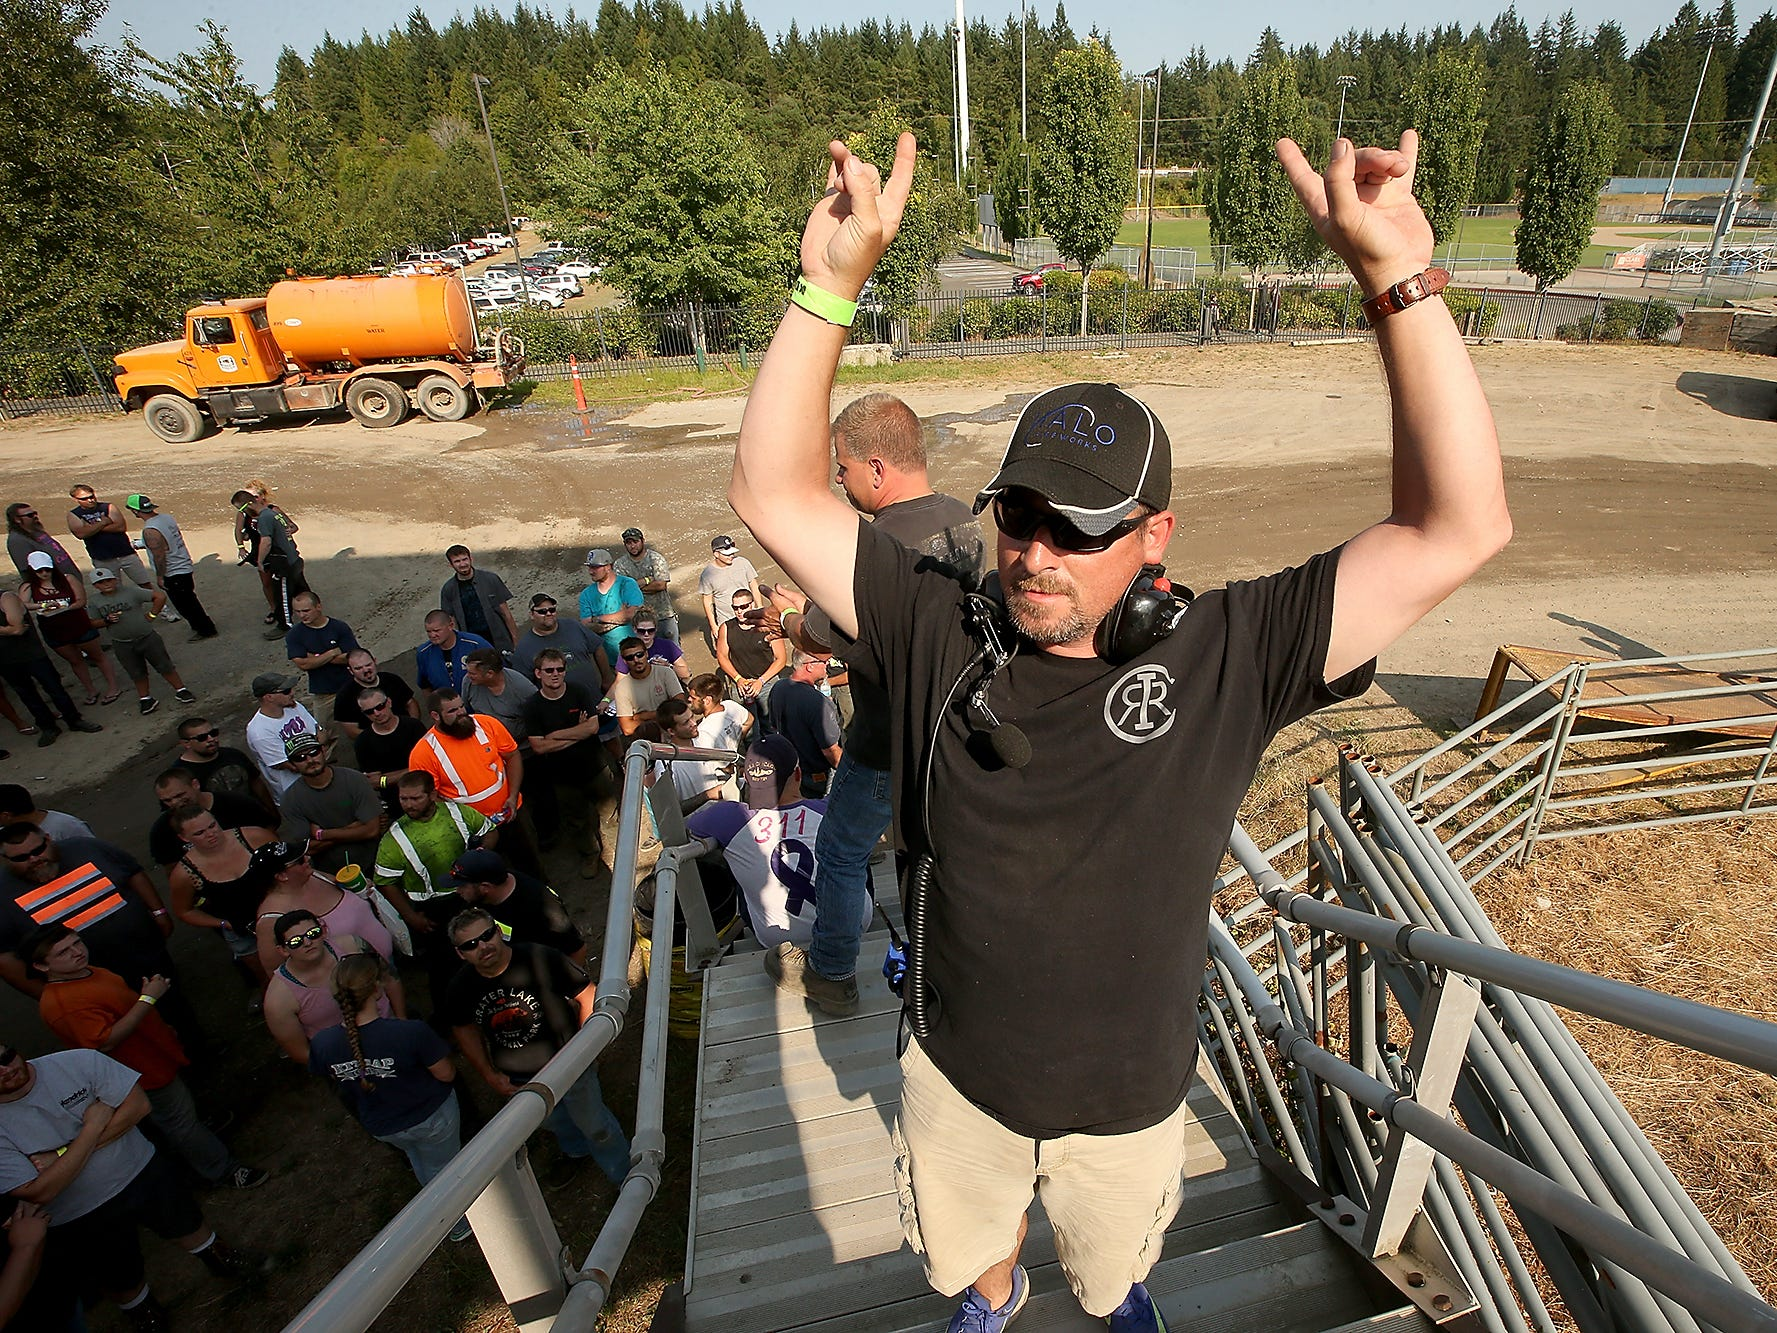 Head Judge Todd Williams throws his arms up in celebration after giving out the times from time trials at the driver's meeting prior to the start of the derby action on Saturday, July 28, 2018.